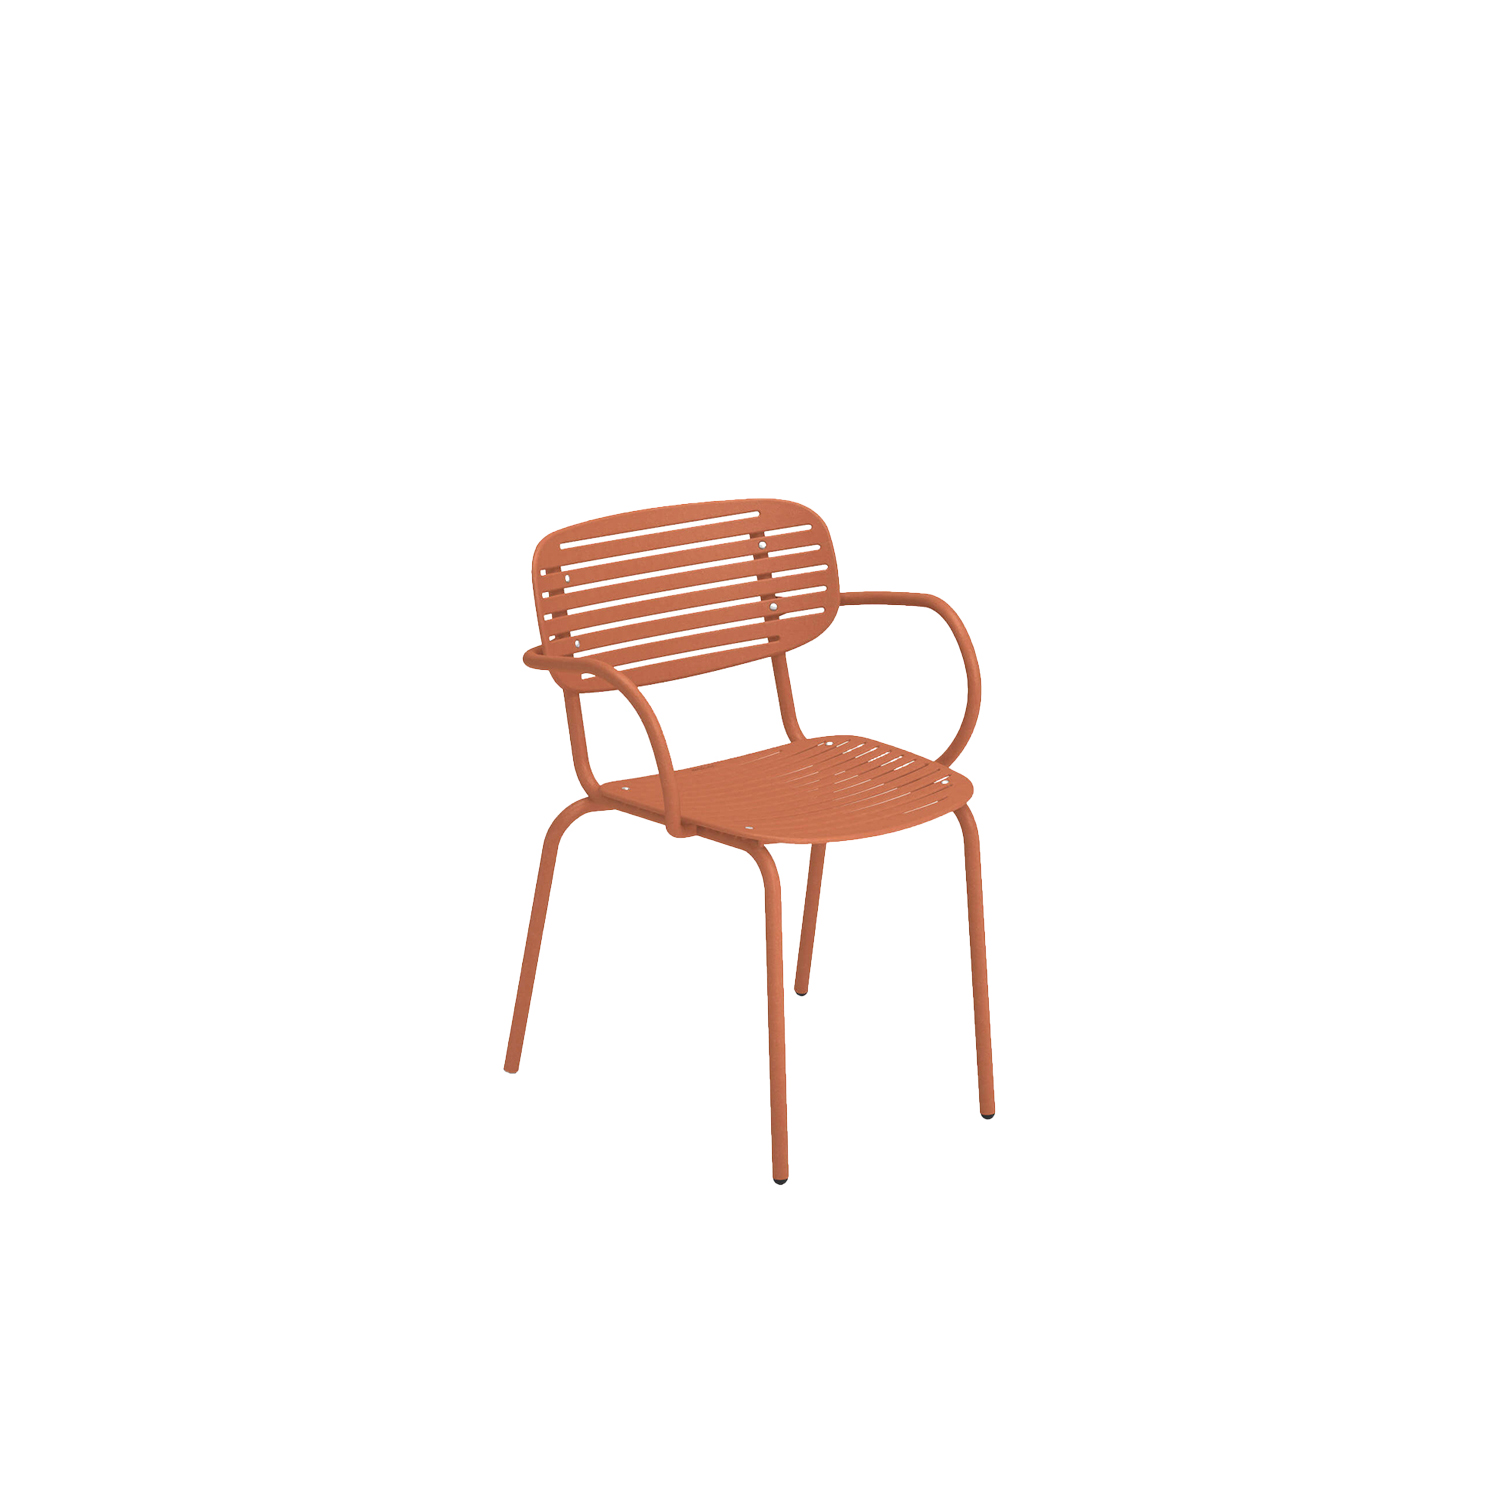 Mom Armchair - Set of 4 - Mom is a brightly coloured collection of steel chairs in two versions, a chair and an armchair. The graphic effect of the elegant, sculptural, metal backrest lightens the soft, snug shapes. The solid colour palette gives this collection a young, fresh and ironic touch.